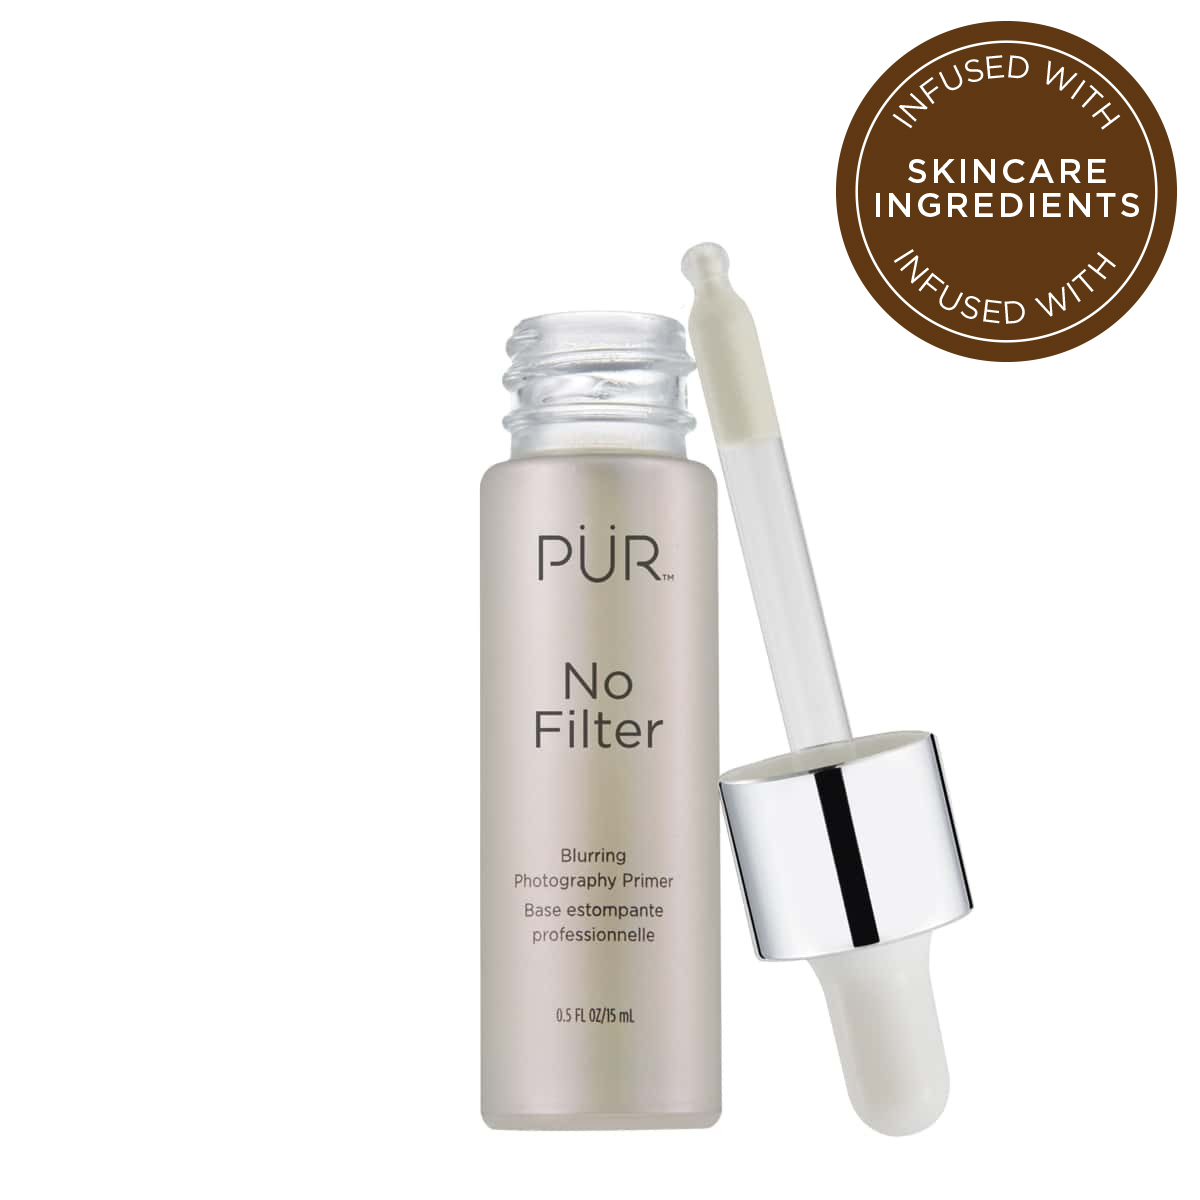 No Filter Blurring Photography Primer